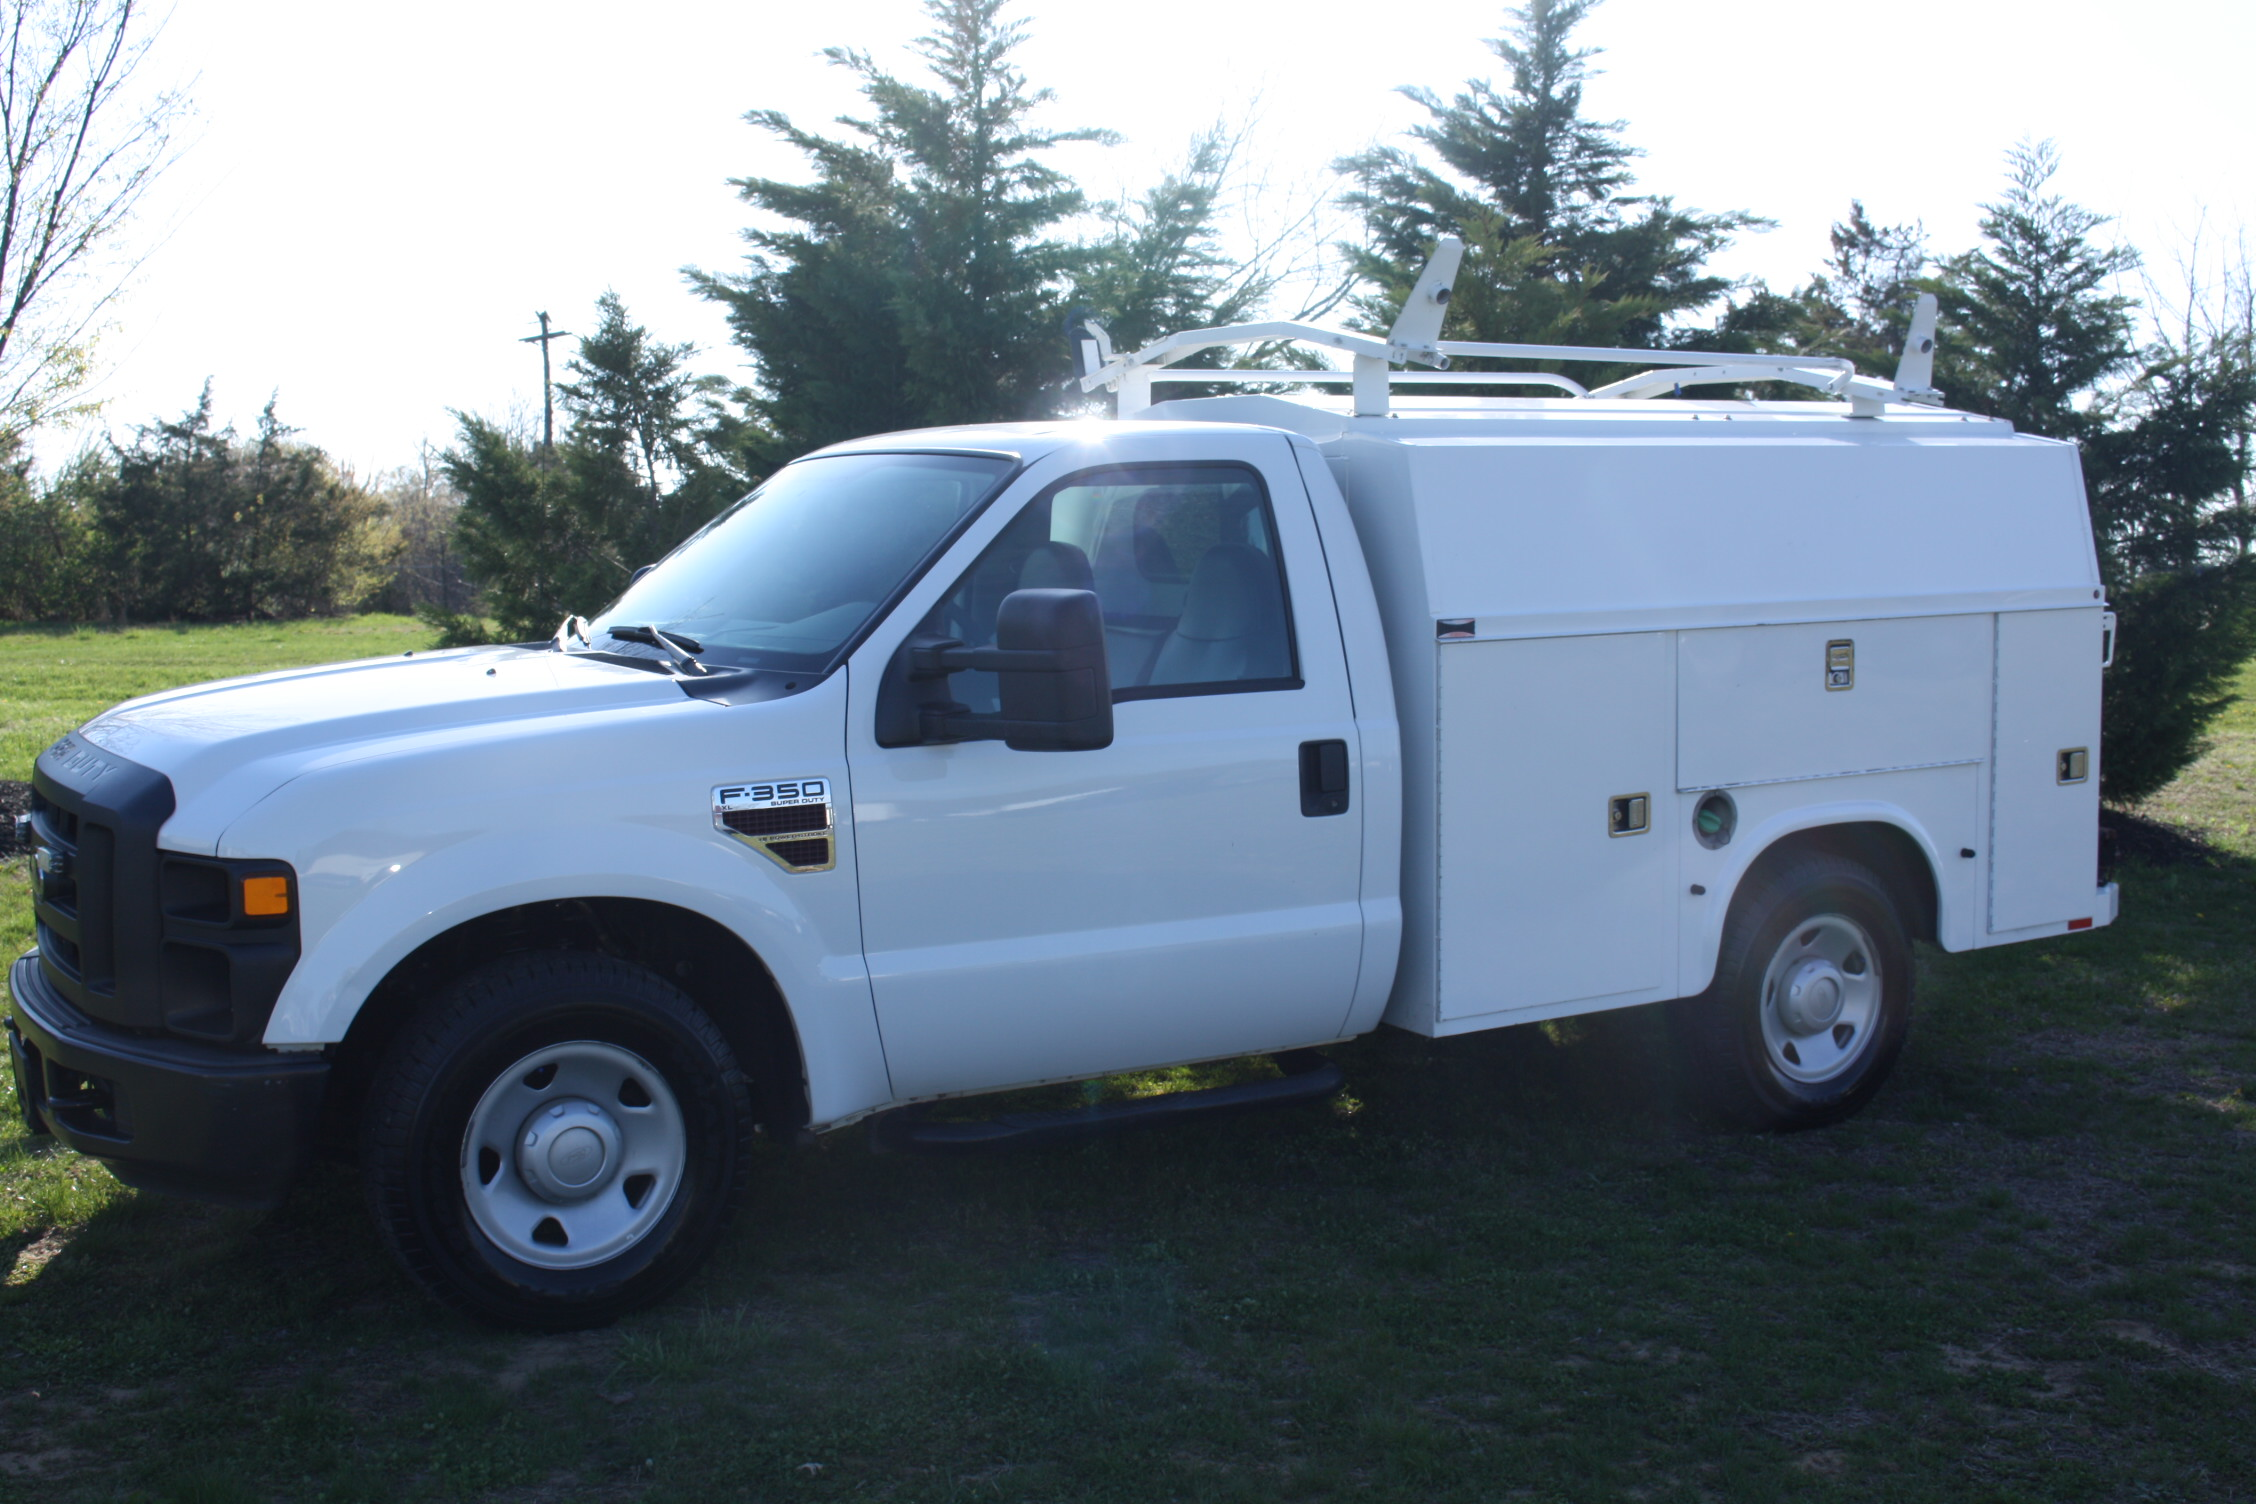 IMG 1202 - 2009 FORD F350 WITH KNAPHEIDE ENCLOSED UTILITY